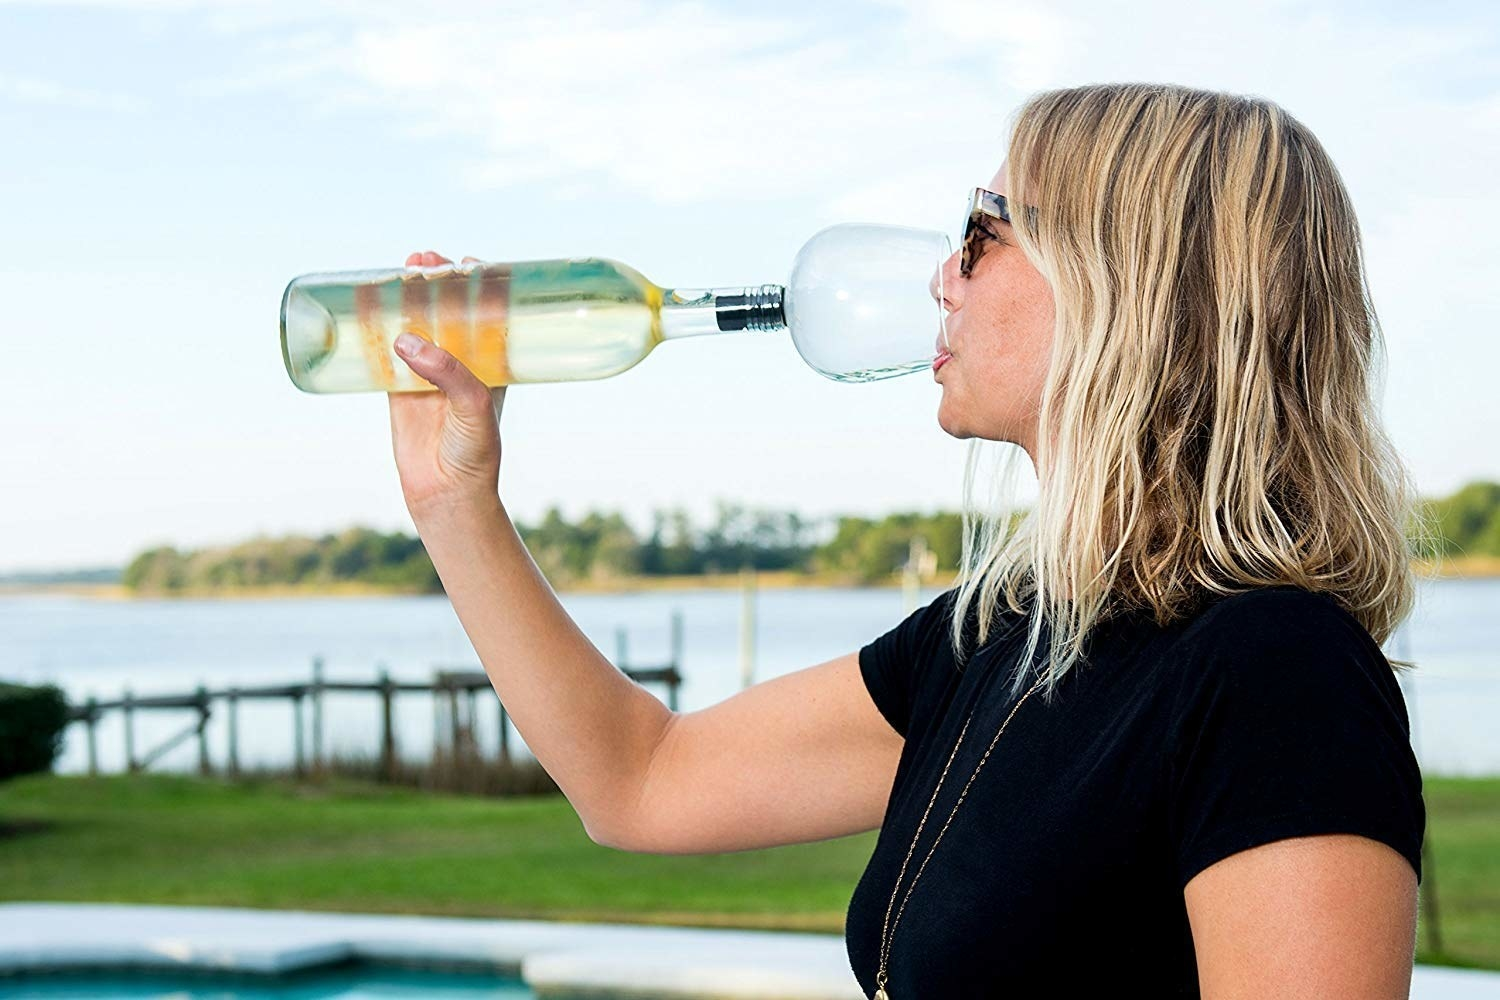 A model using the screwed-in glass top to drink wine straight from the bottle